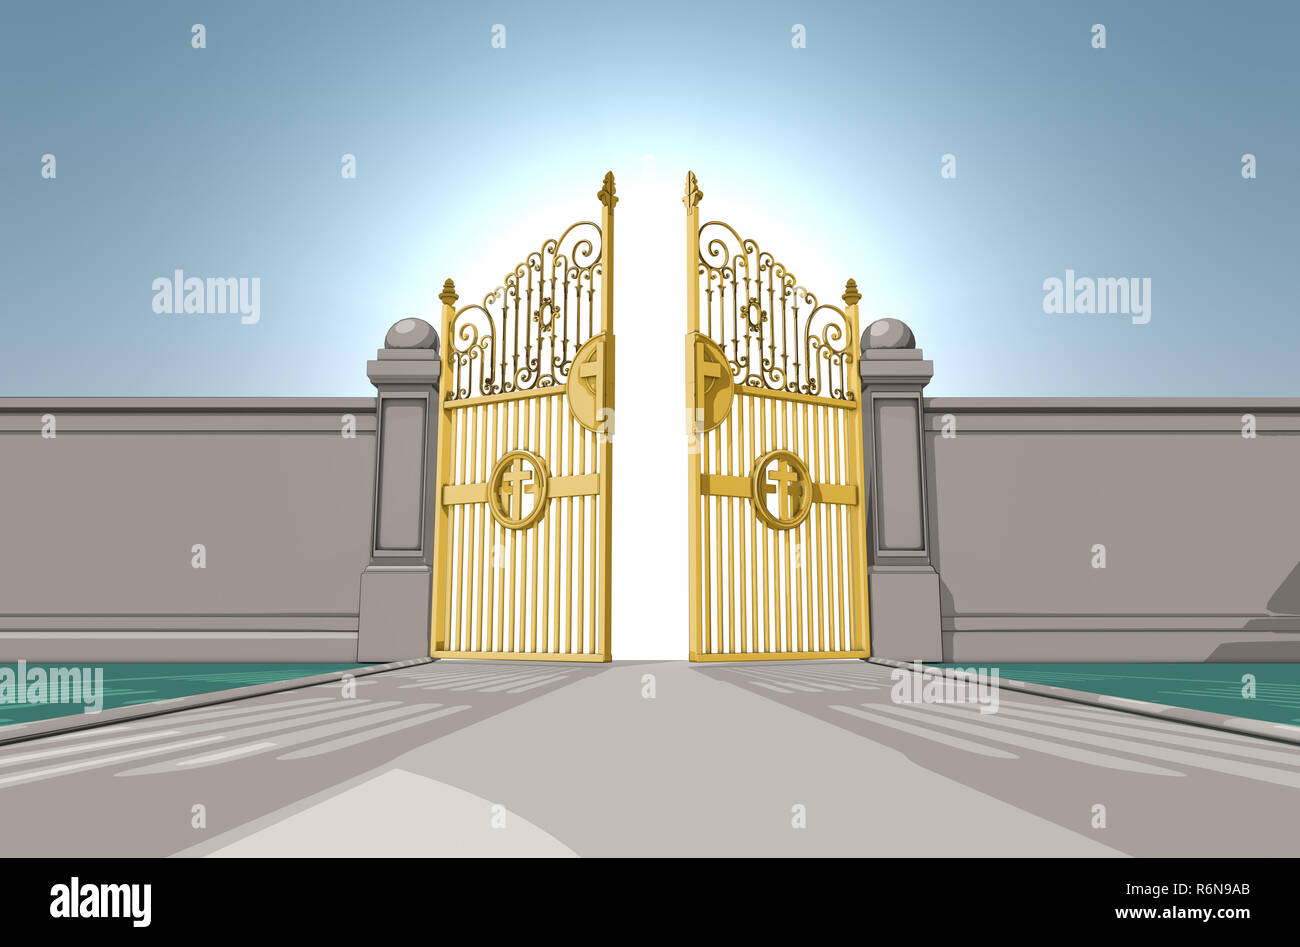 An illustrated depiction of the golden pearly gates of heaven opening on a blue sky background - 3D render Stock Photo